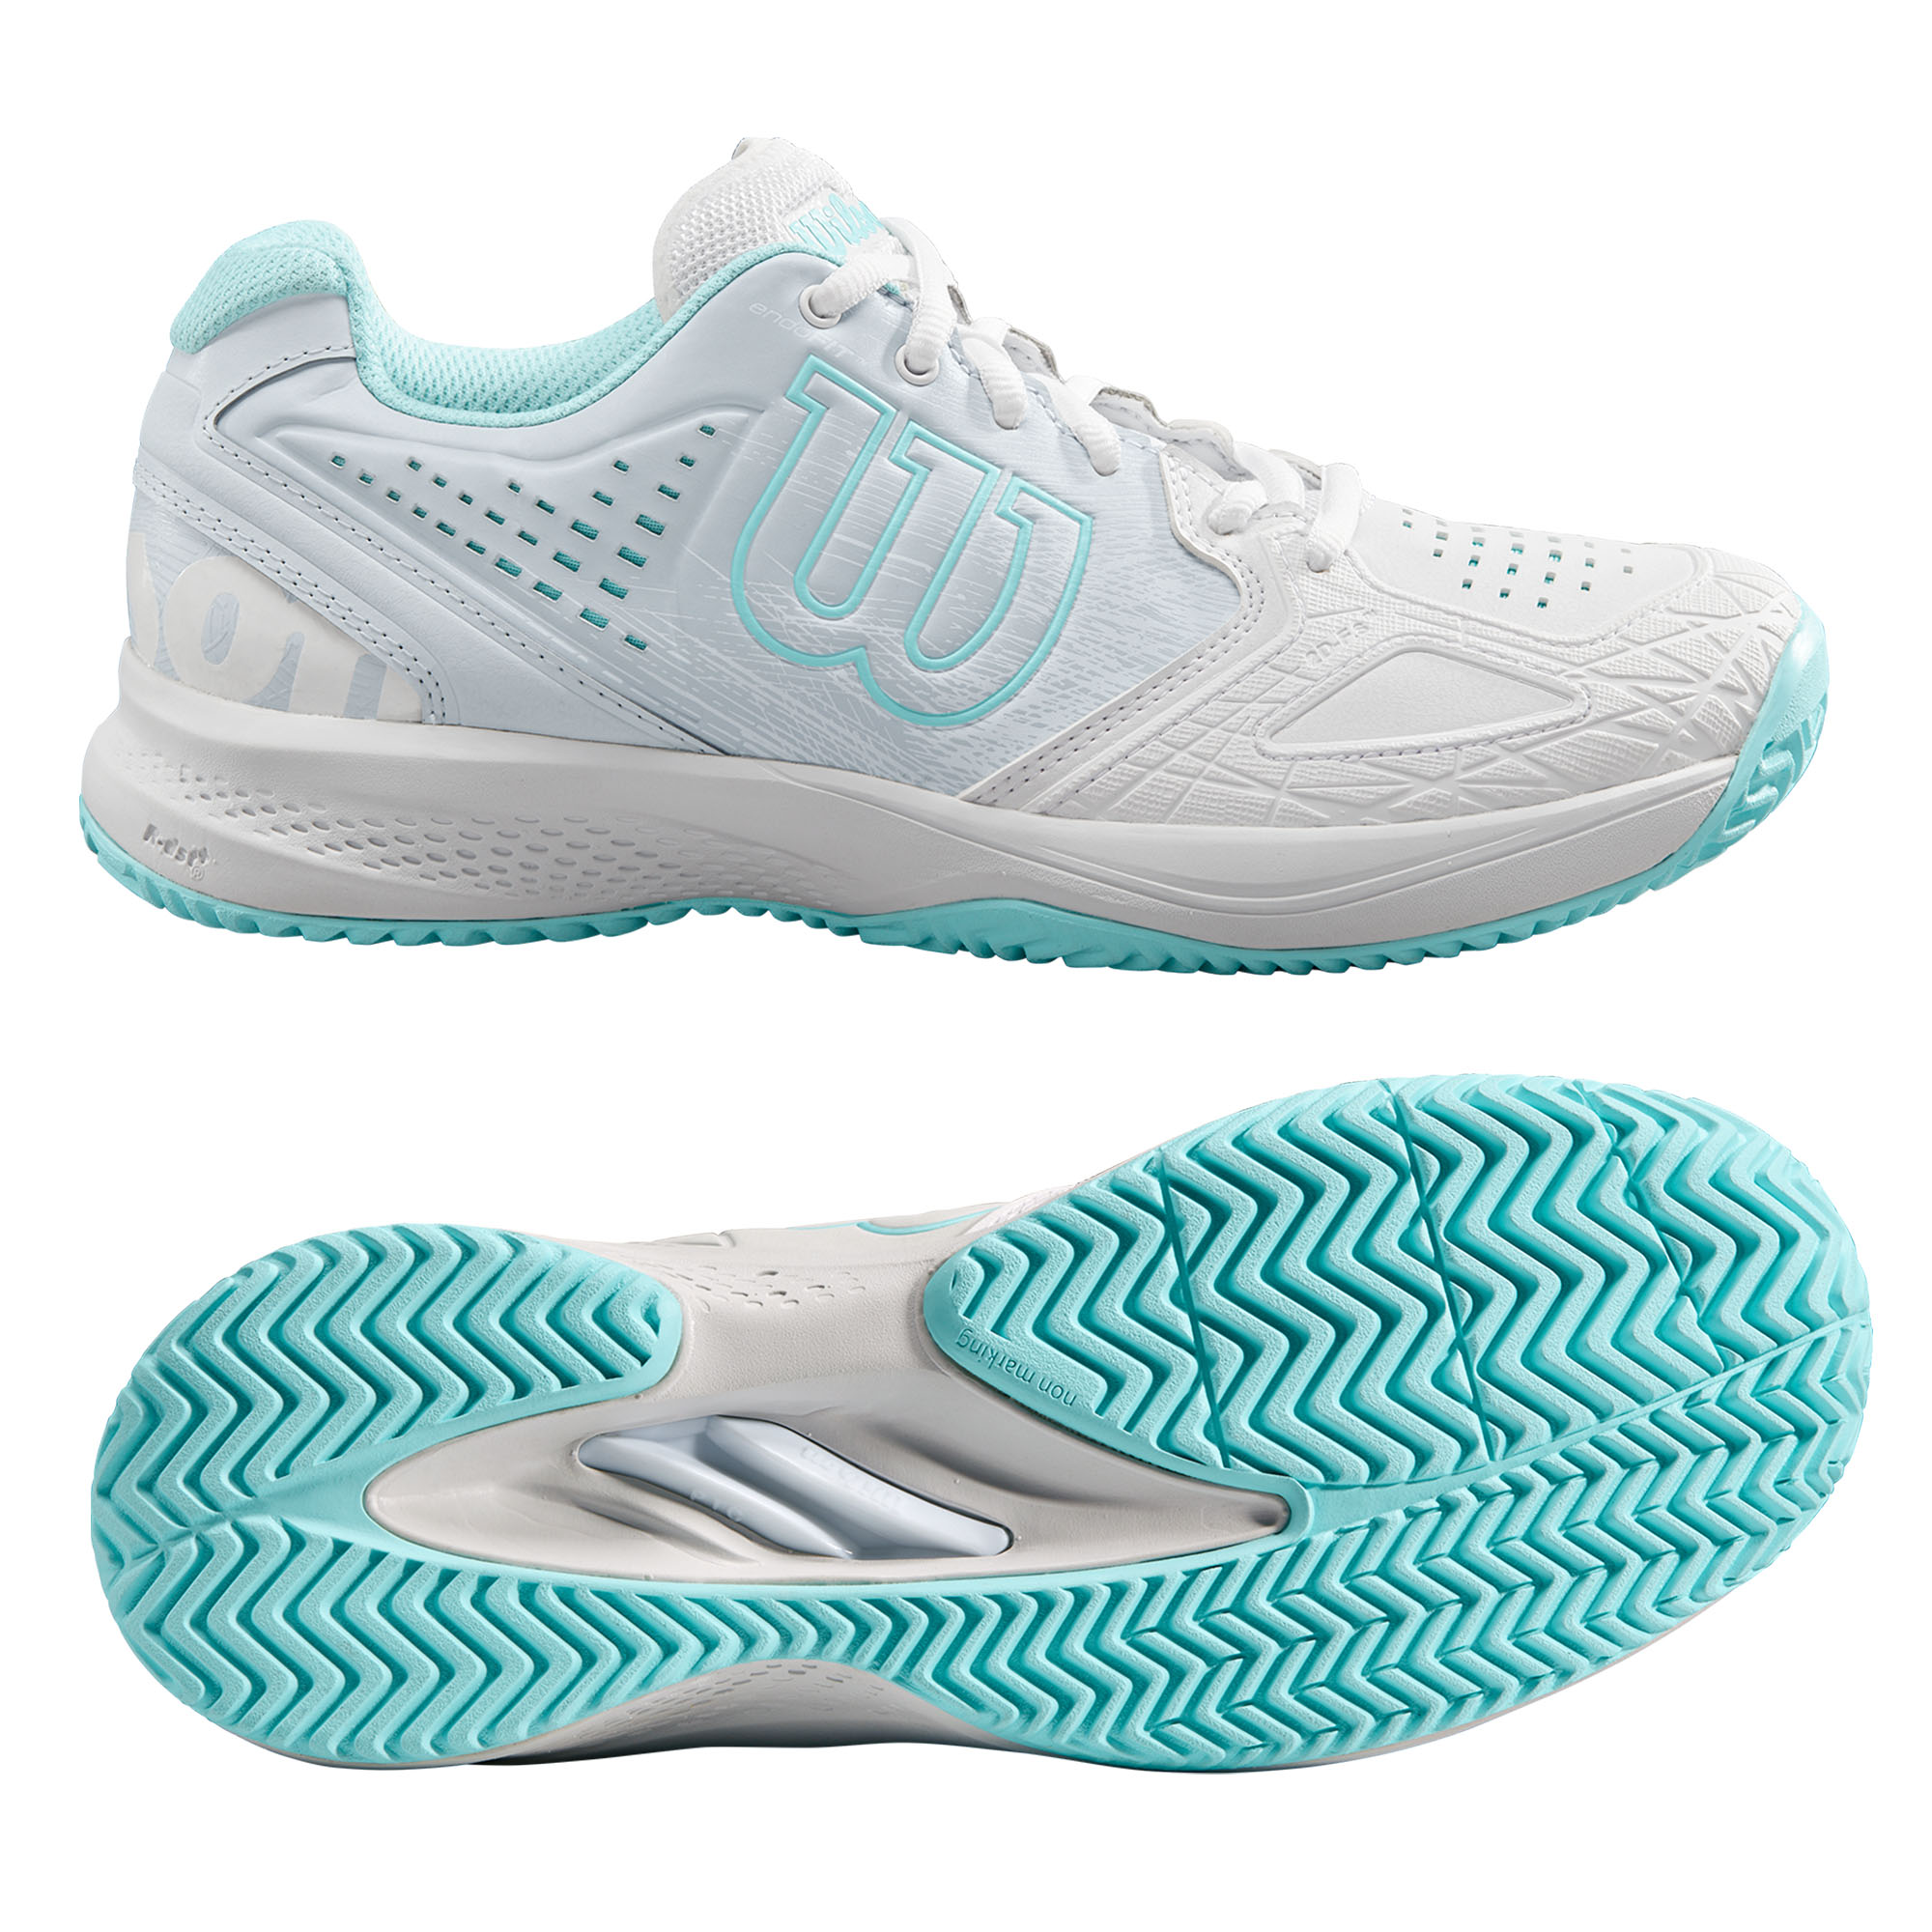 Image of Wilson Kaos Comp 2.0 Ladies Tennis Shoes - 4 UK